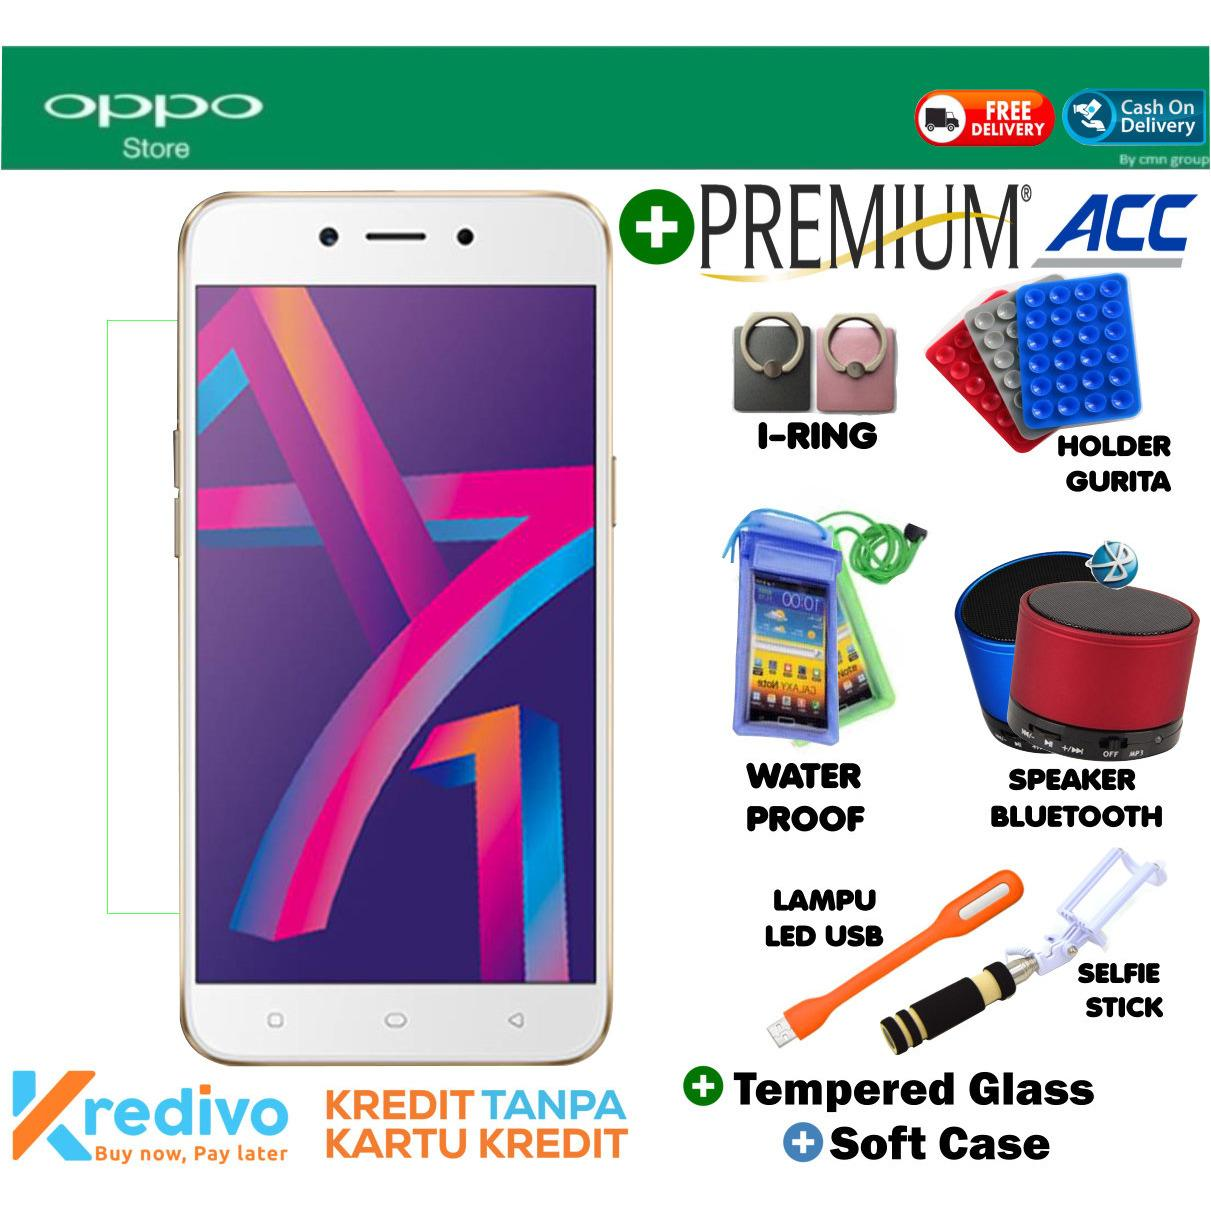 Oppo A71 2018 3/32 GB - Plus Premuim Accecories Menarik